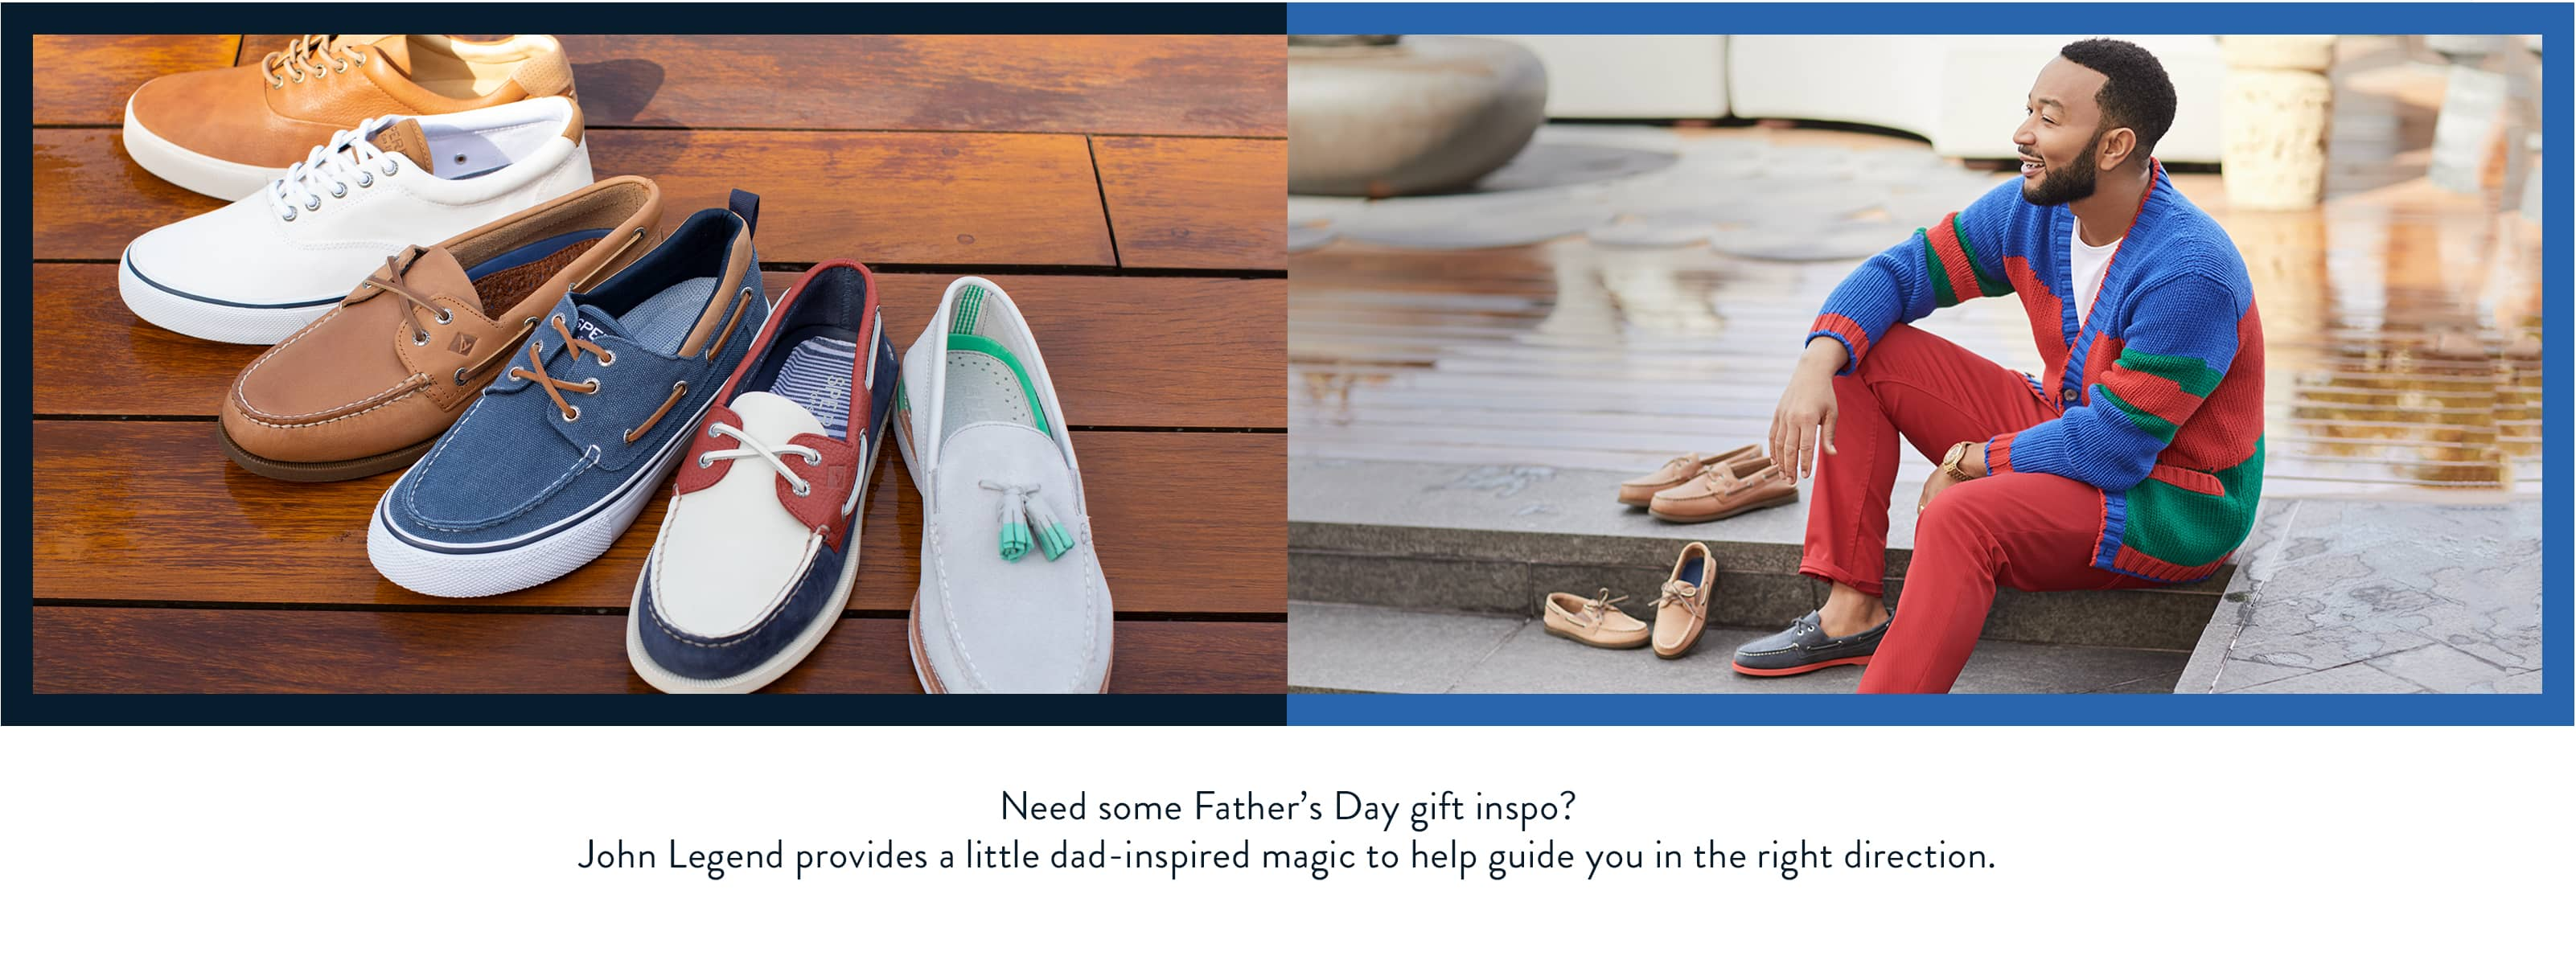 john-legend-fathers-day-gift-guide